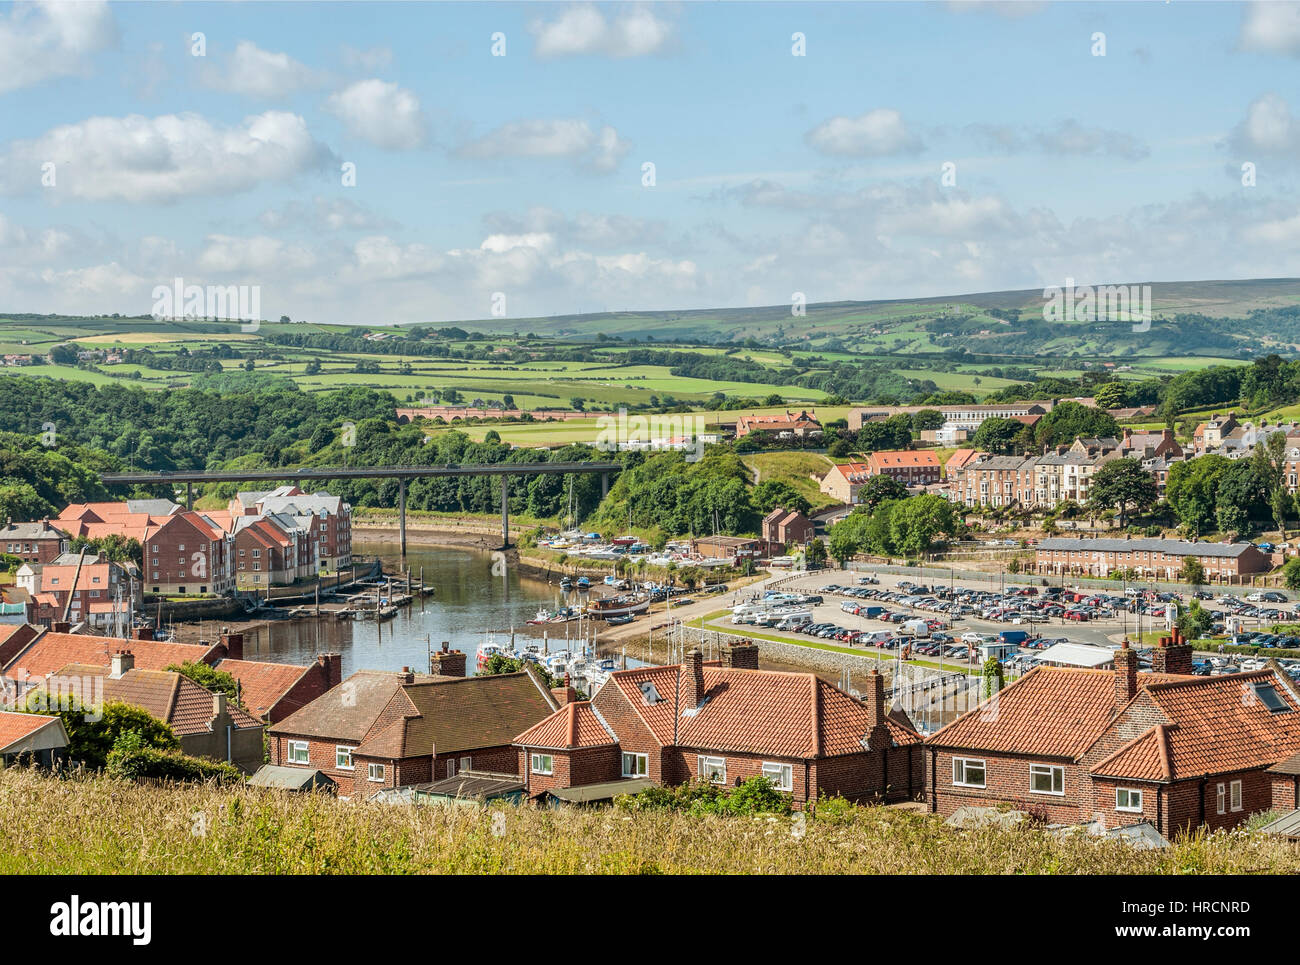 Elevated view over the River Esk and the landscape near Whitby, England, UK. Whitby is a town and civil parish in - Stock Image